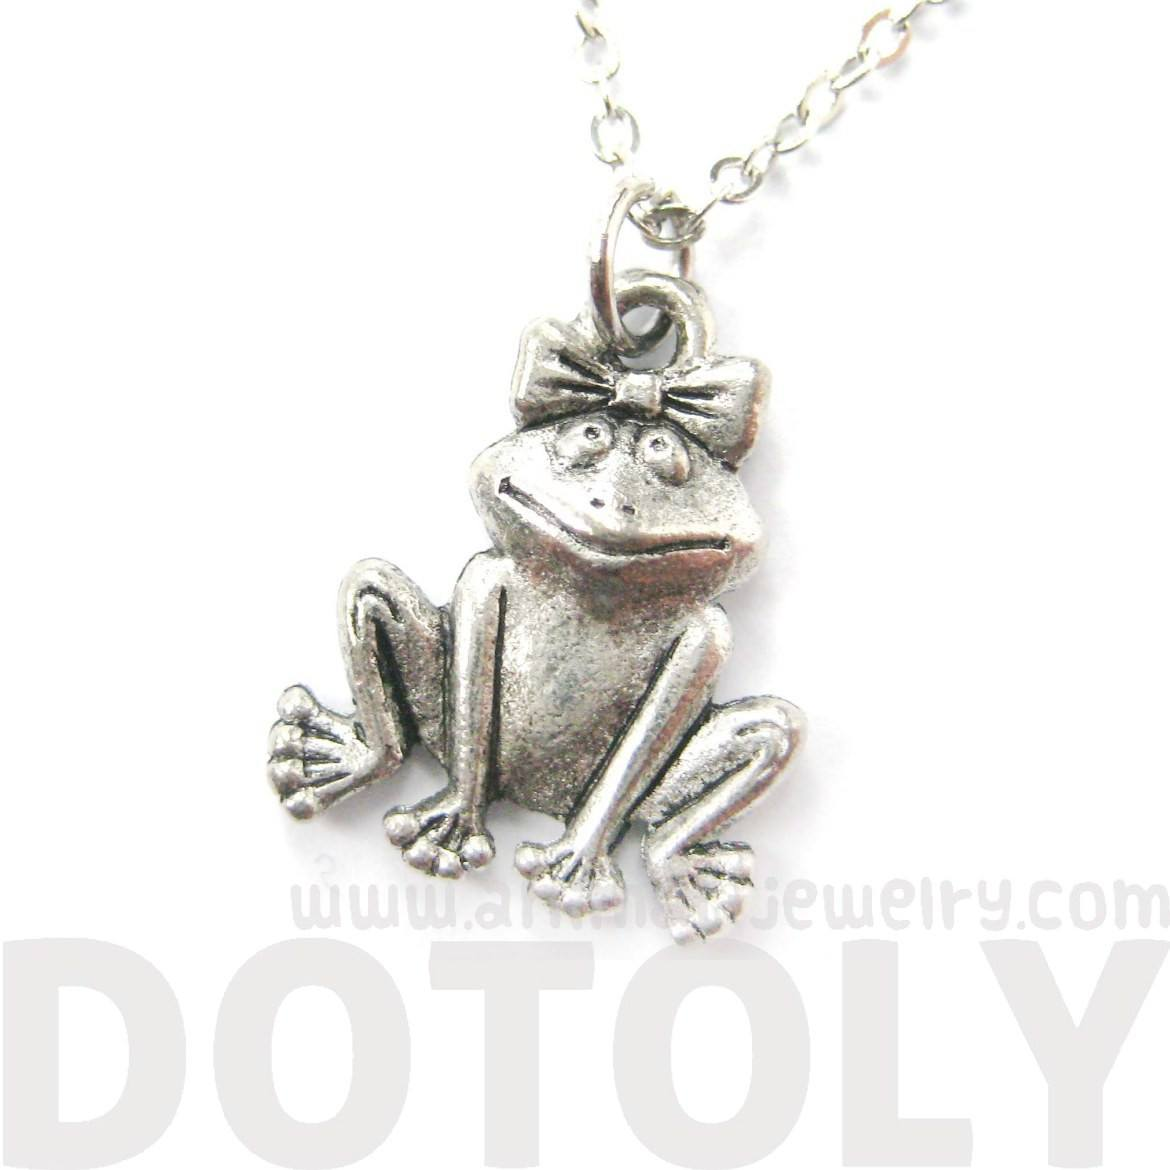 Adorable Frog With A Bow Shaped Animal Charm Necklace | MADE IN USA